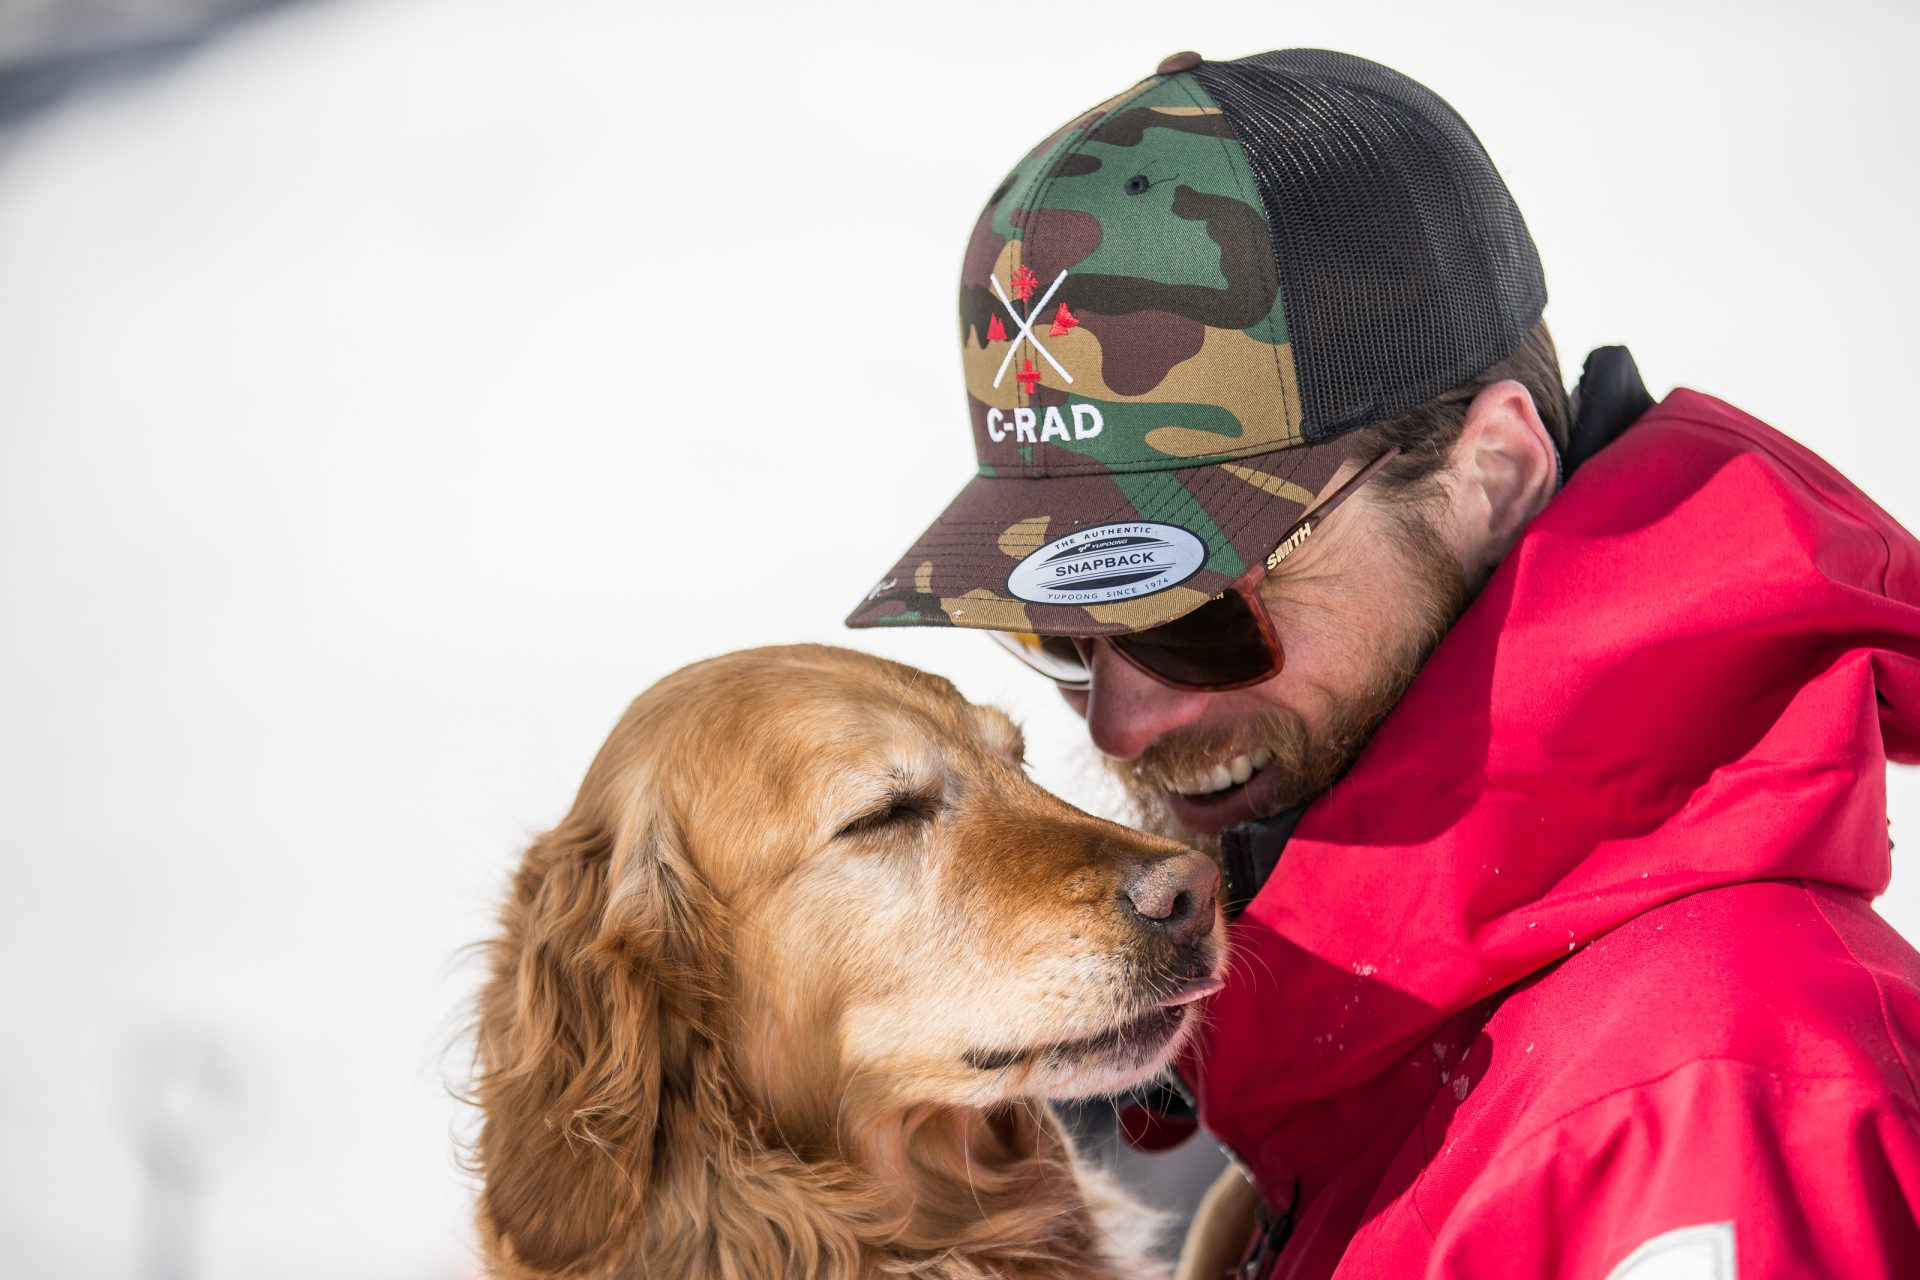 Dog handler with dog and C-RAD hat